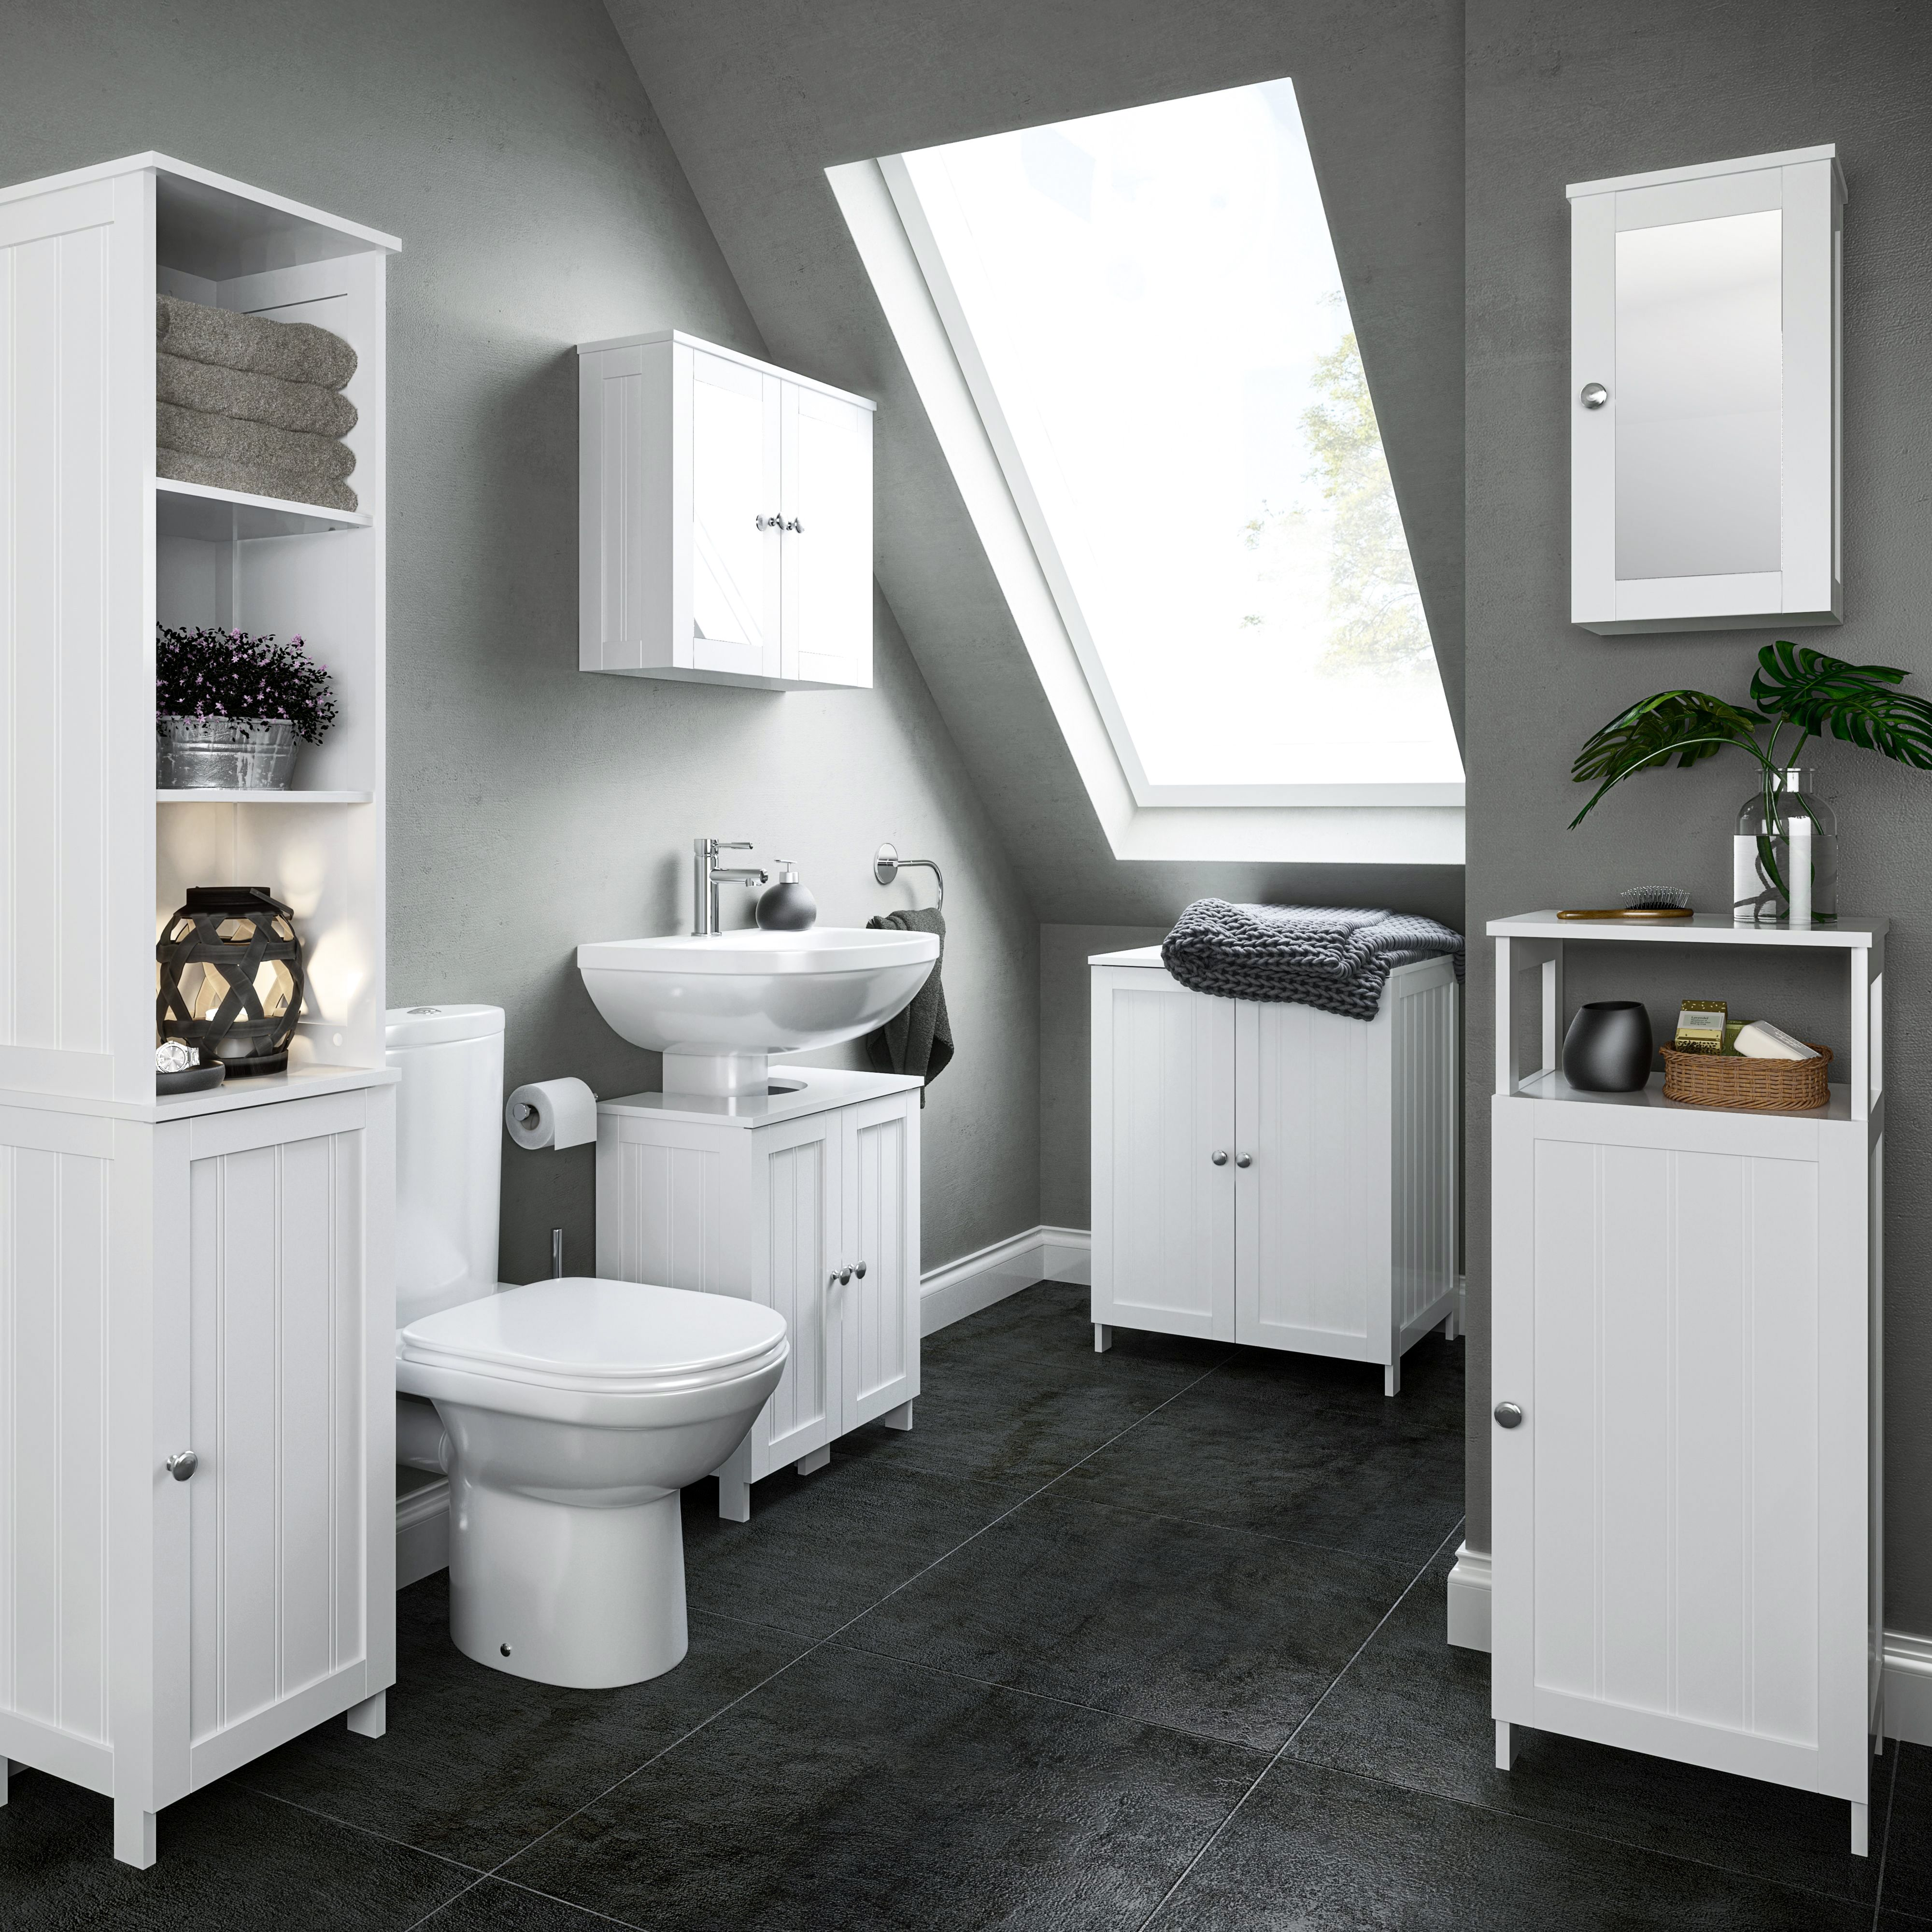 bathroom units nicolina freestanding bathroom furniture LSRXWWY